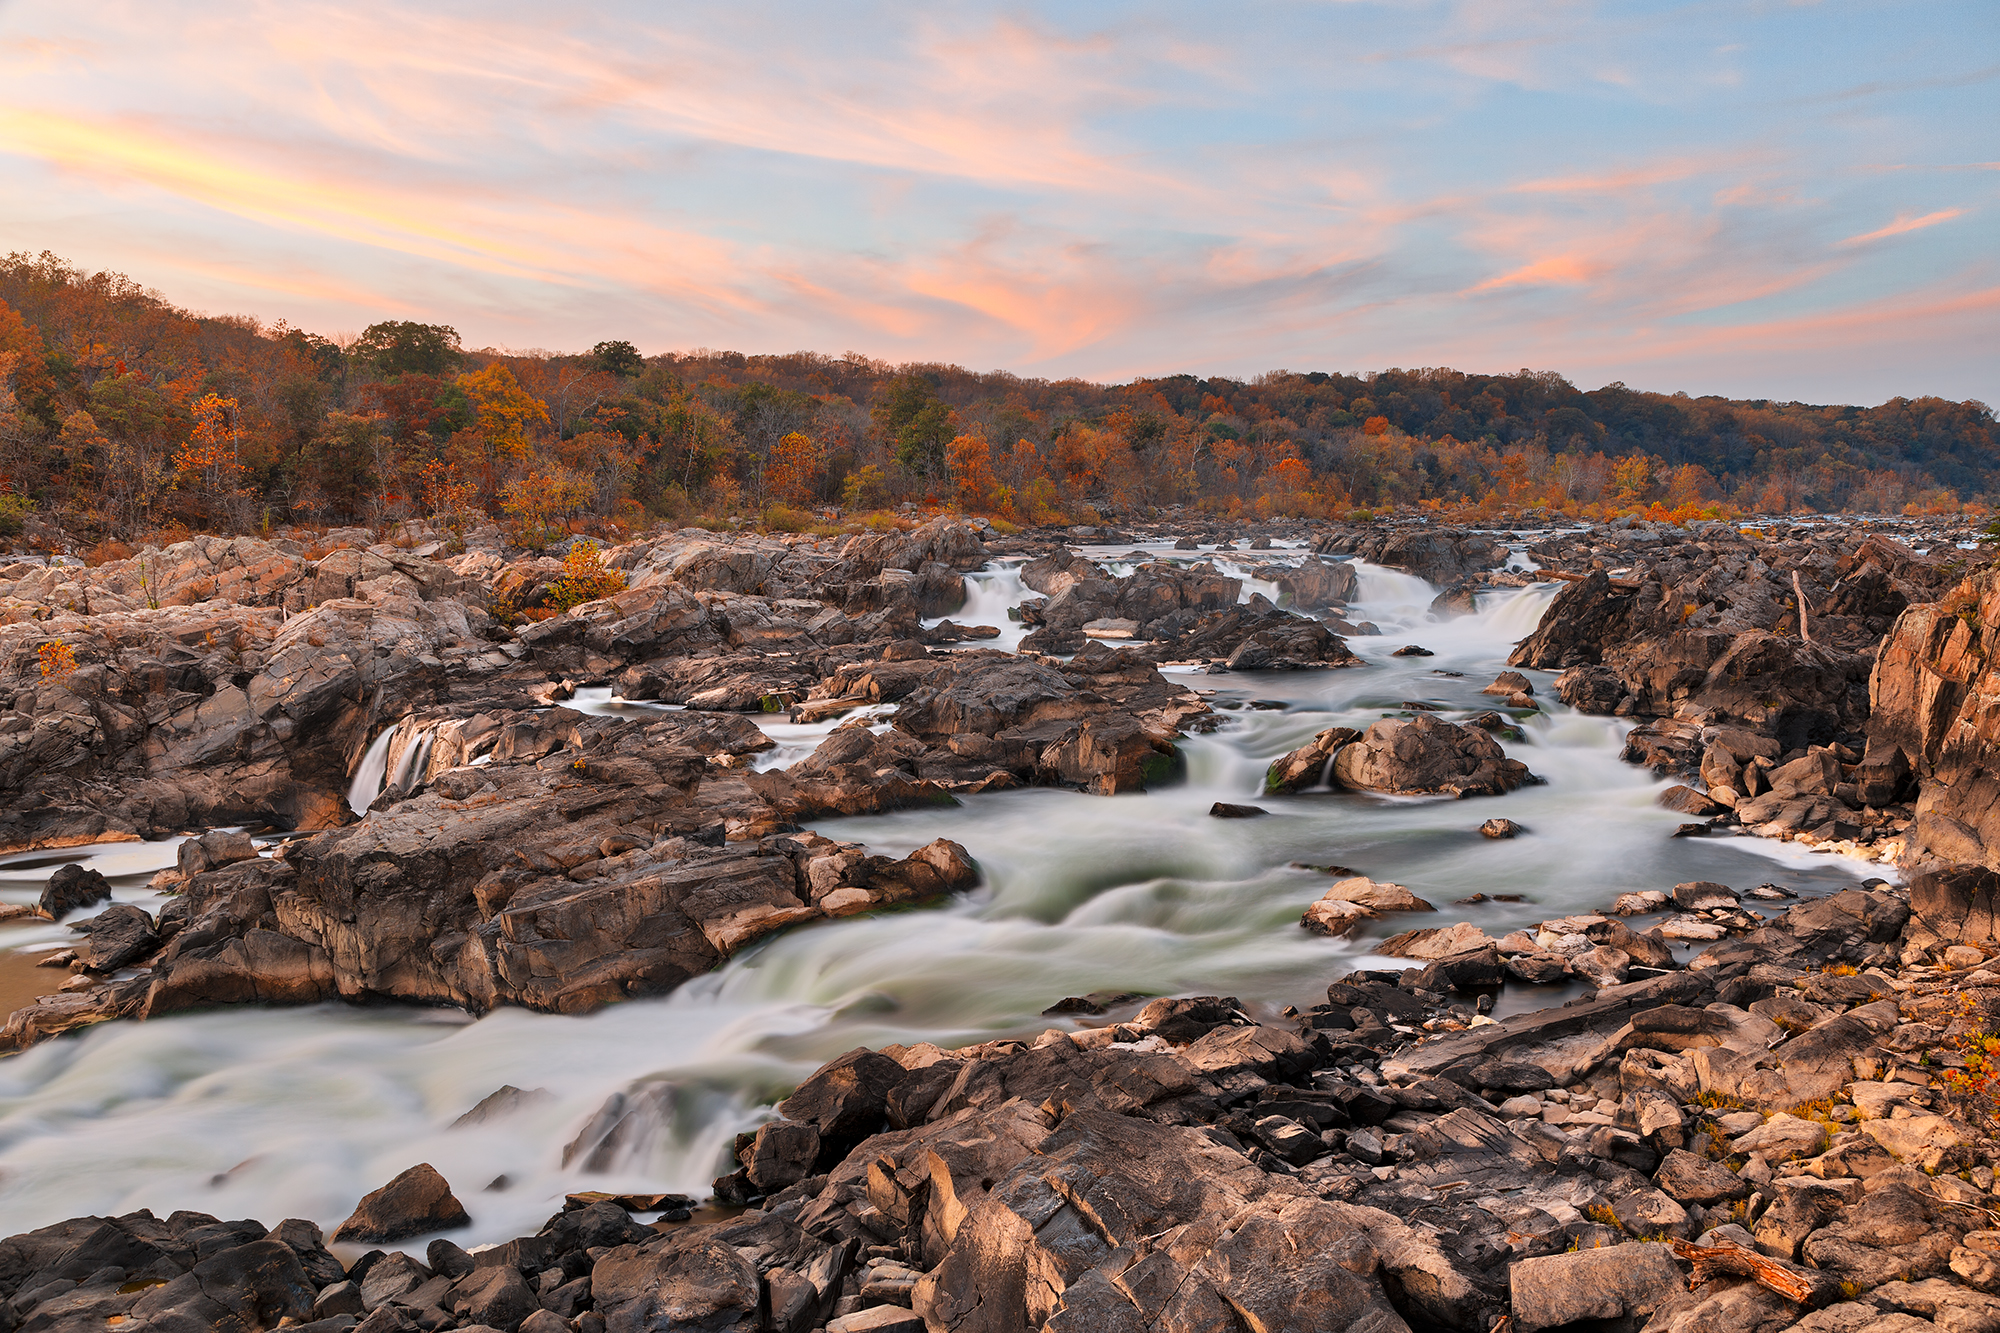 Great Falls / Olmsted Island Viewpoint (Maryland), USA